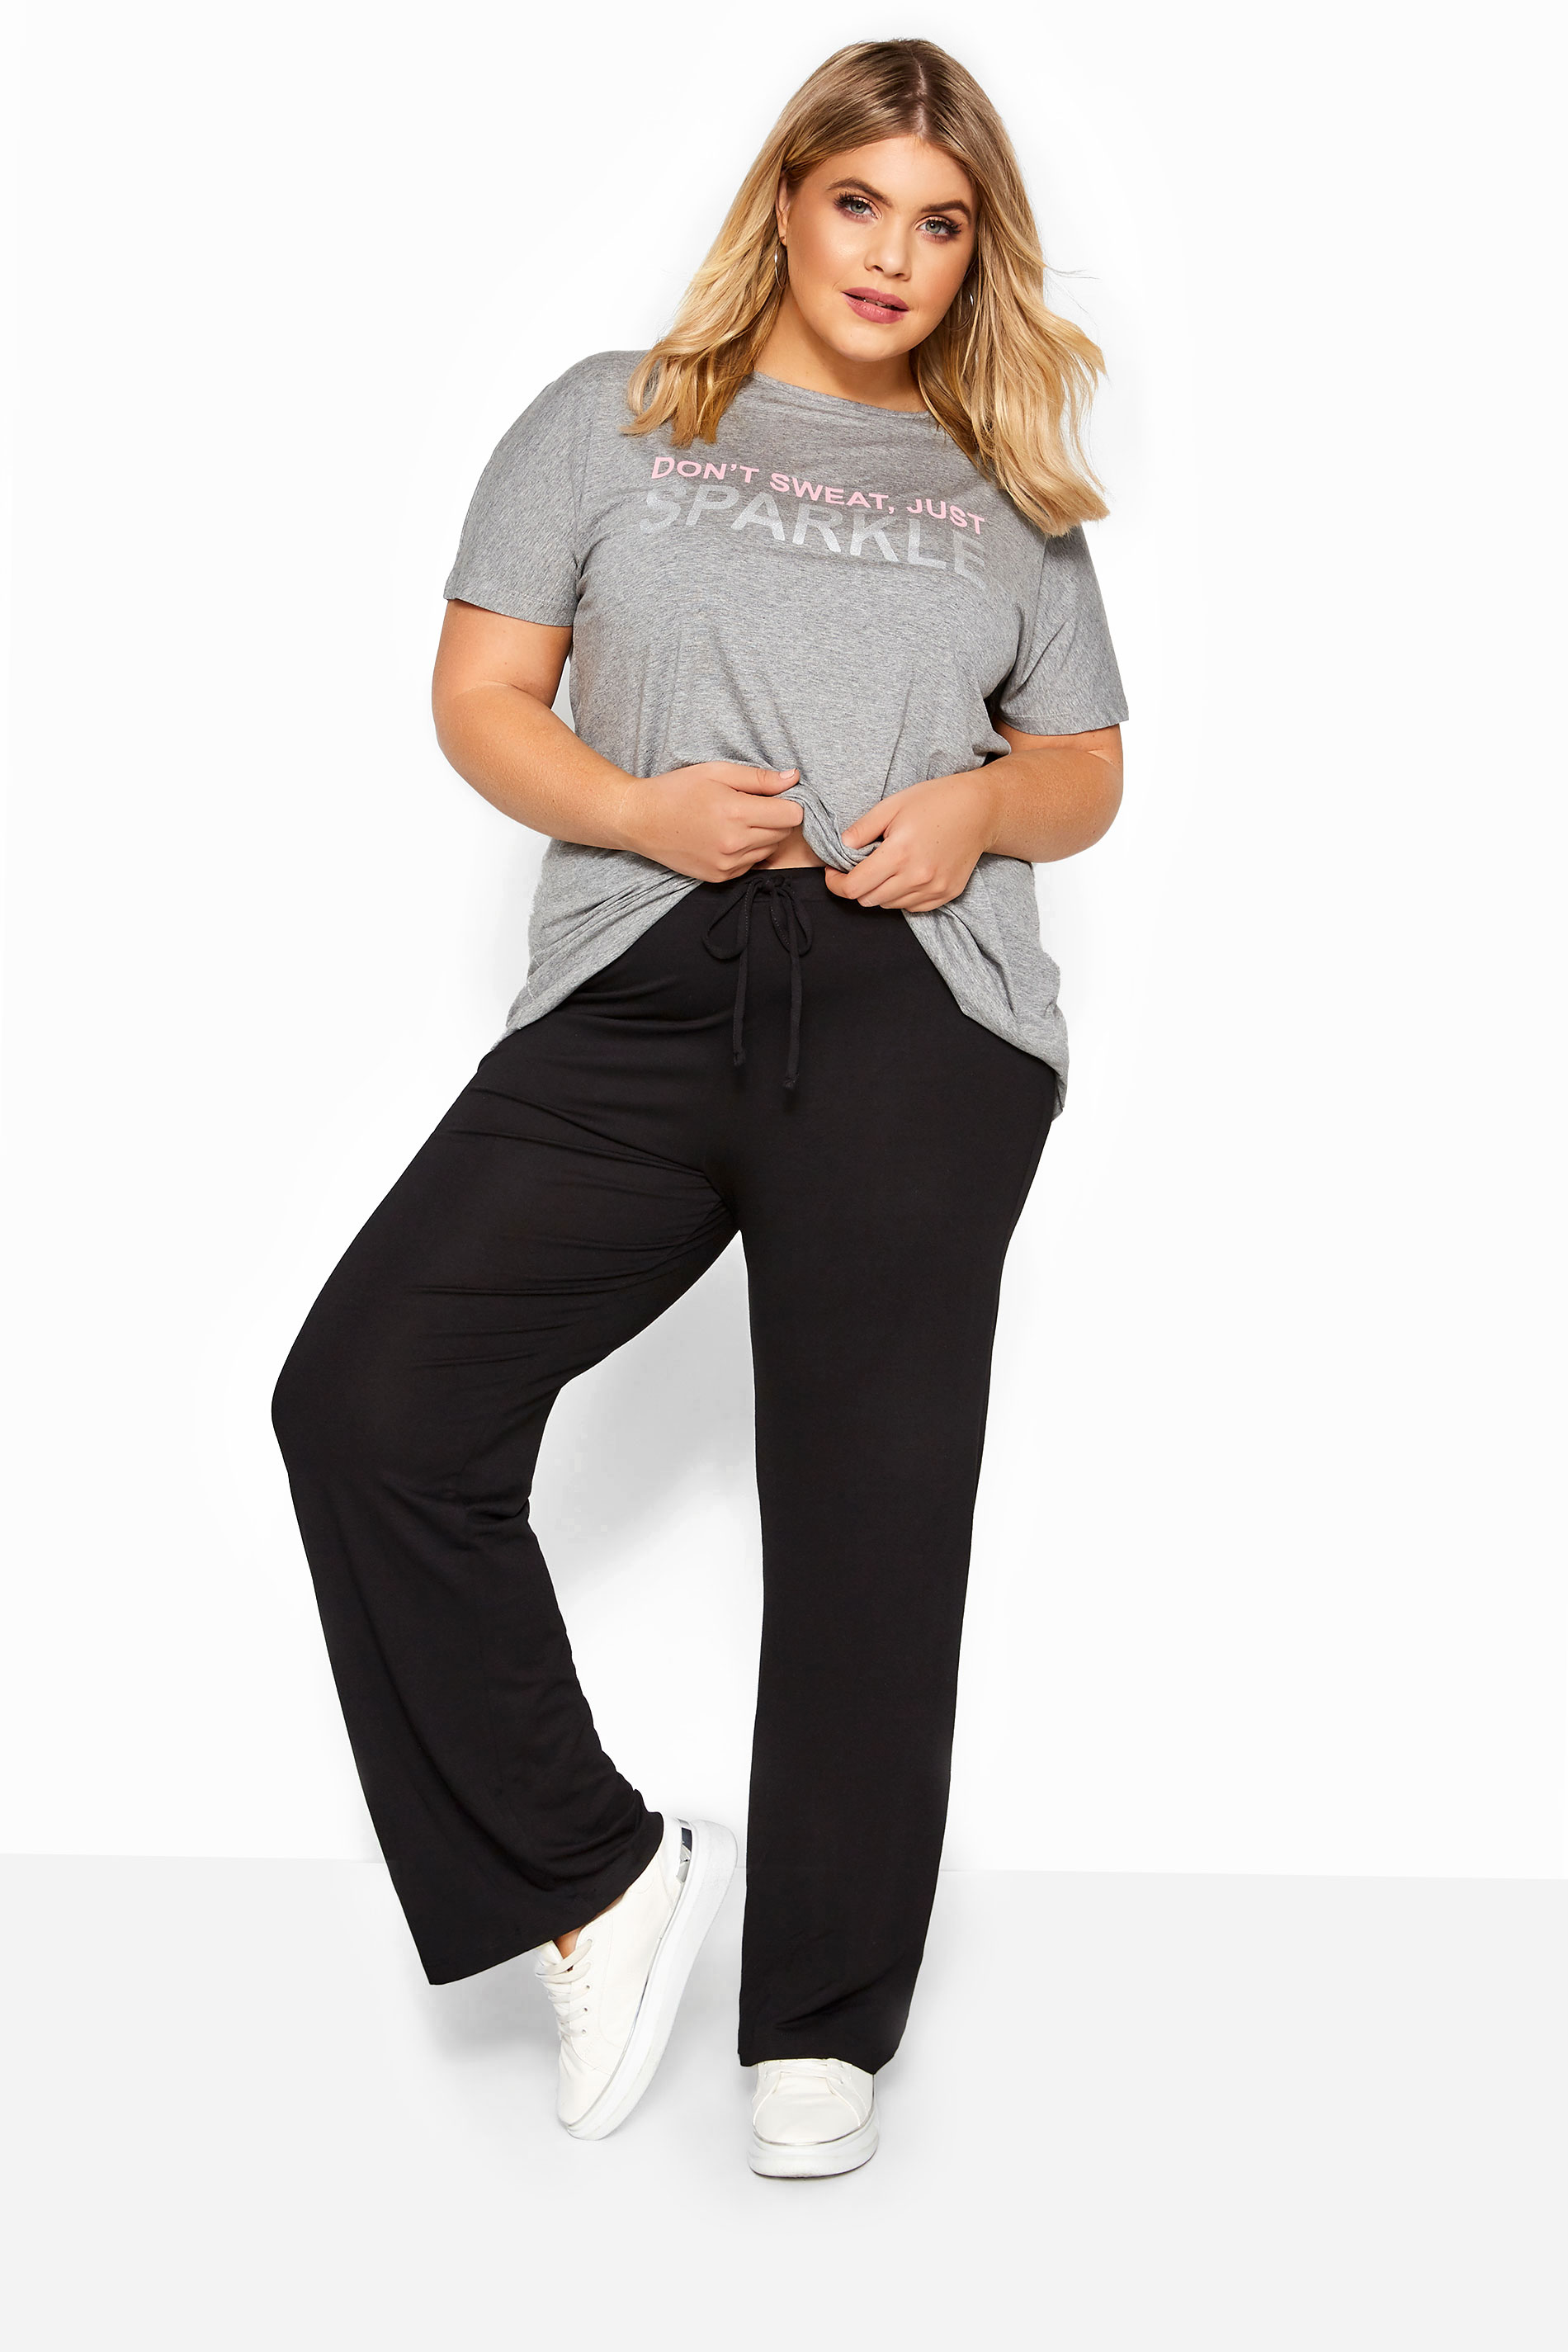 BESTSELLER Black Wide Leg Pull On Stretch Jersey Yoga Pants